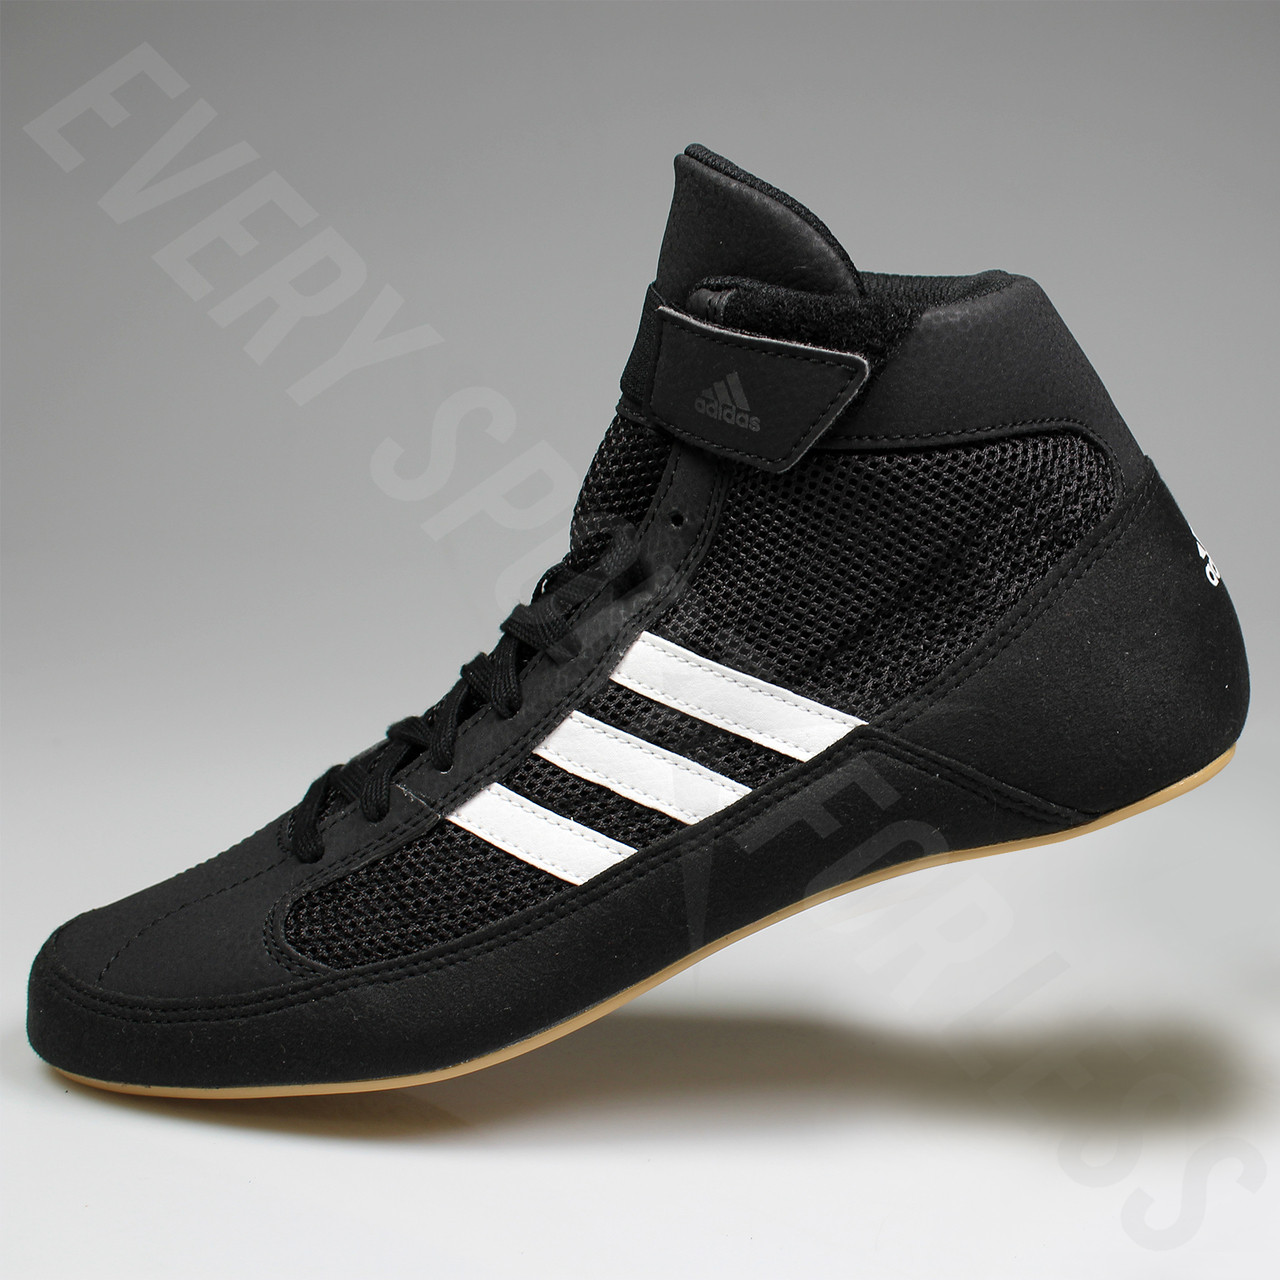 Adidas HVC 2 Youth Wrestling Shoes AQ3327 Black, White